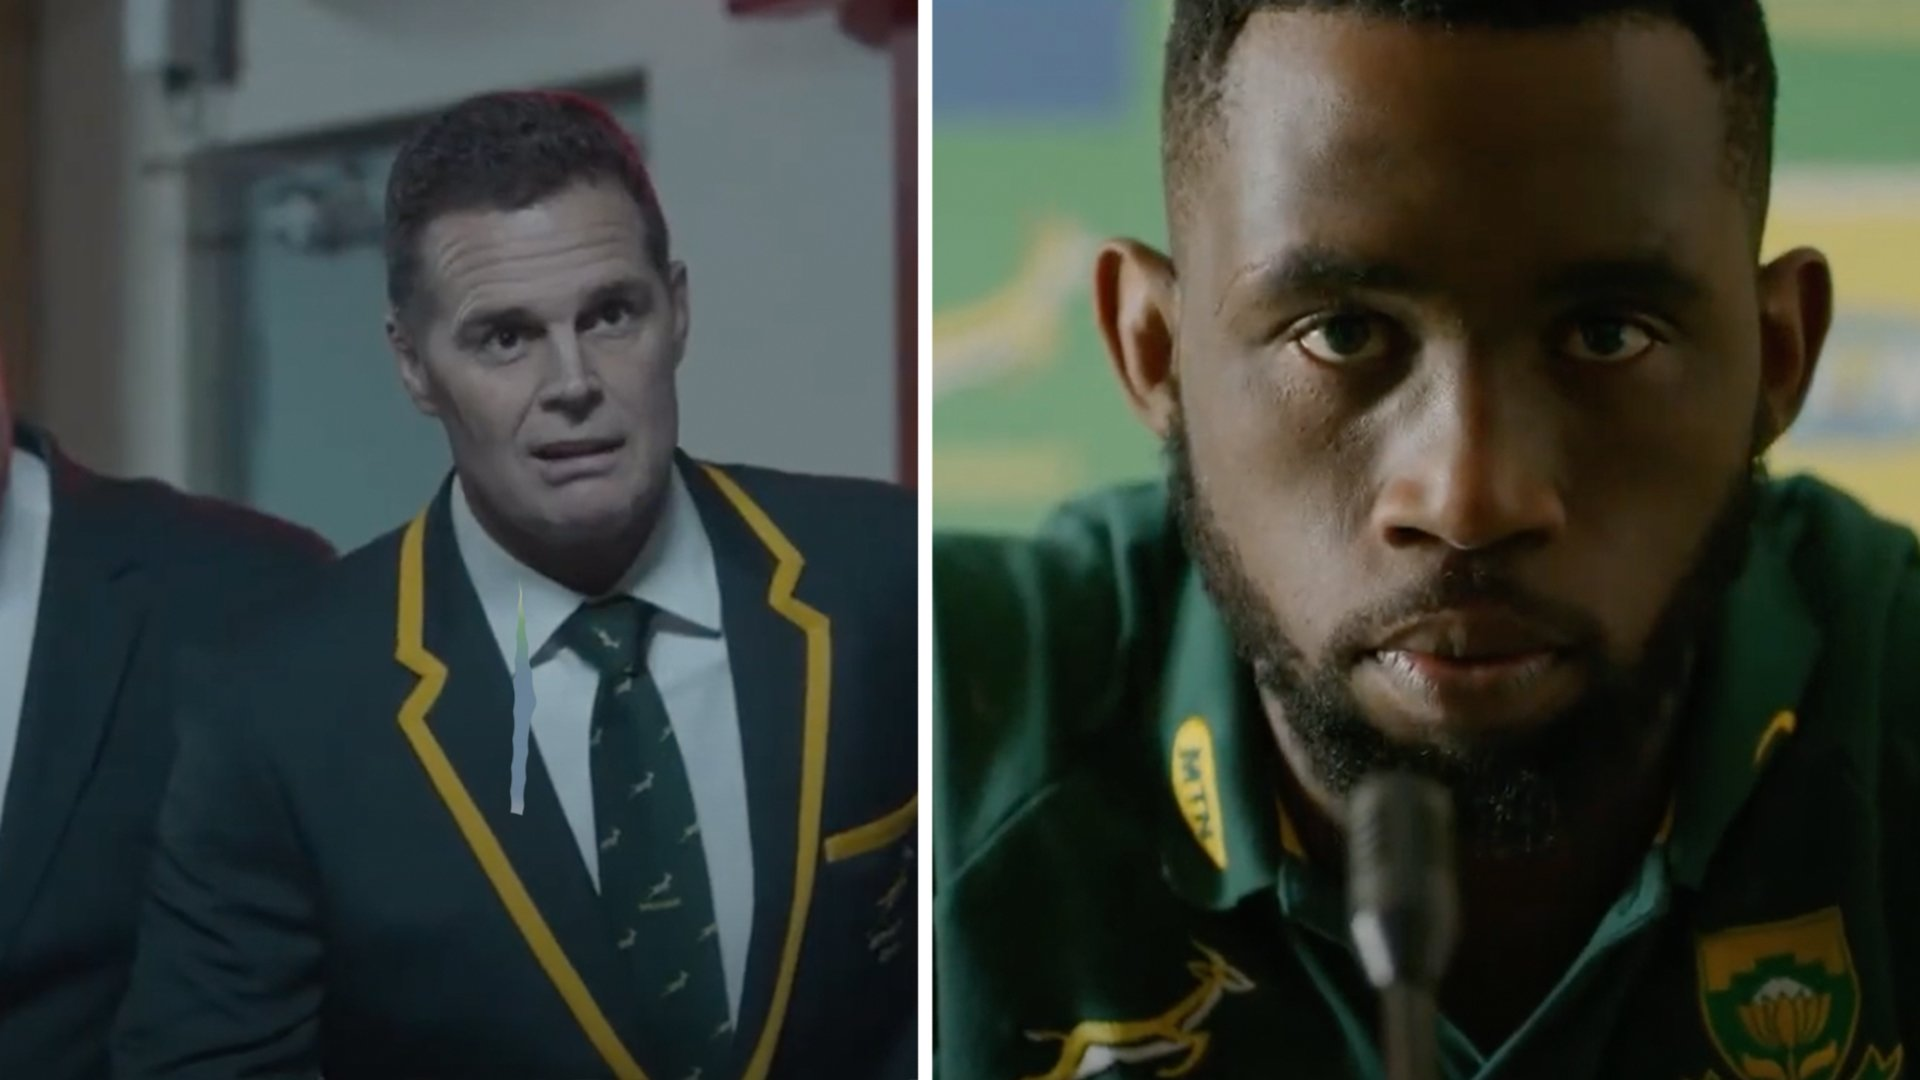 Springboks release spine tingling trailer for their Official World Cup winning documentary